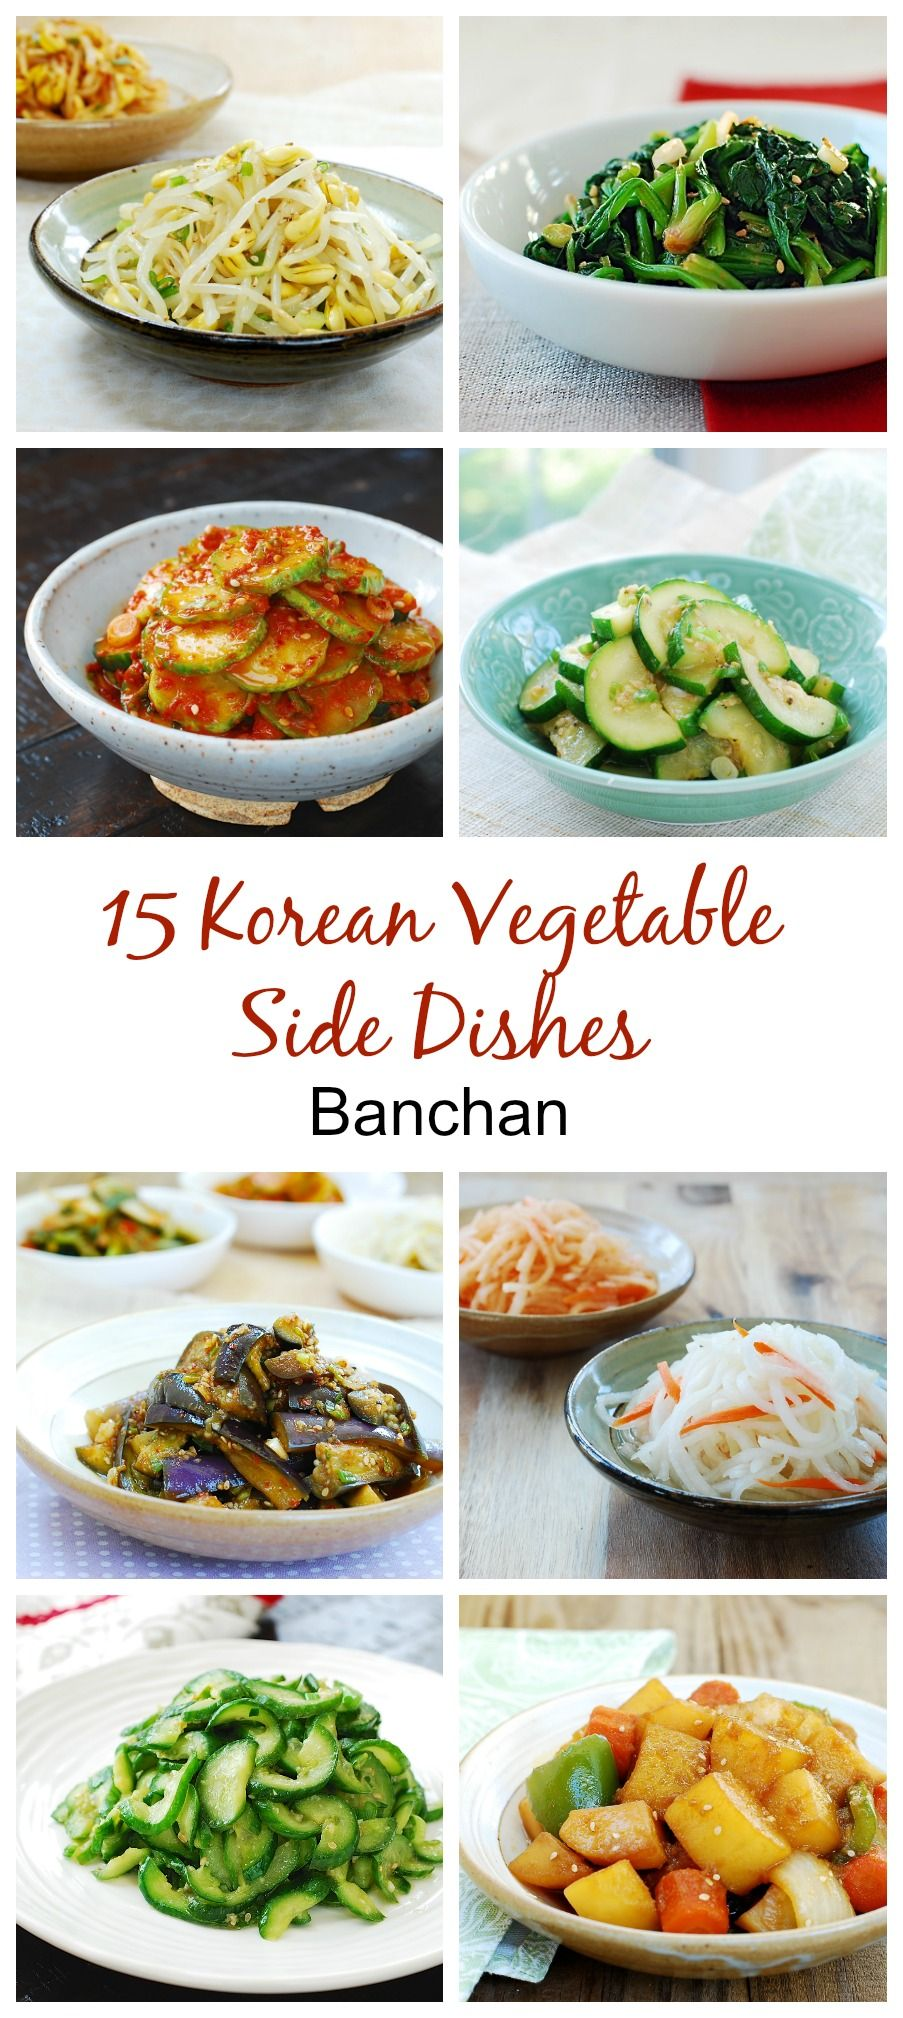 15 korean vegetable side dishes vegetable side dishes korean and 15 korean vegetable side dishes korean bapsang forumfinder Gallery